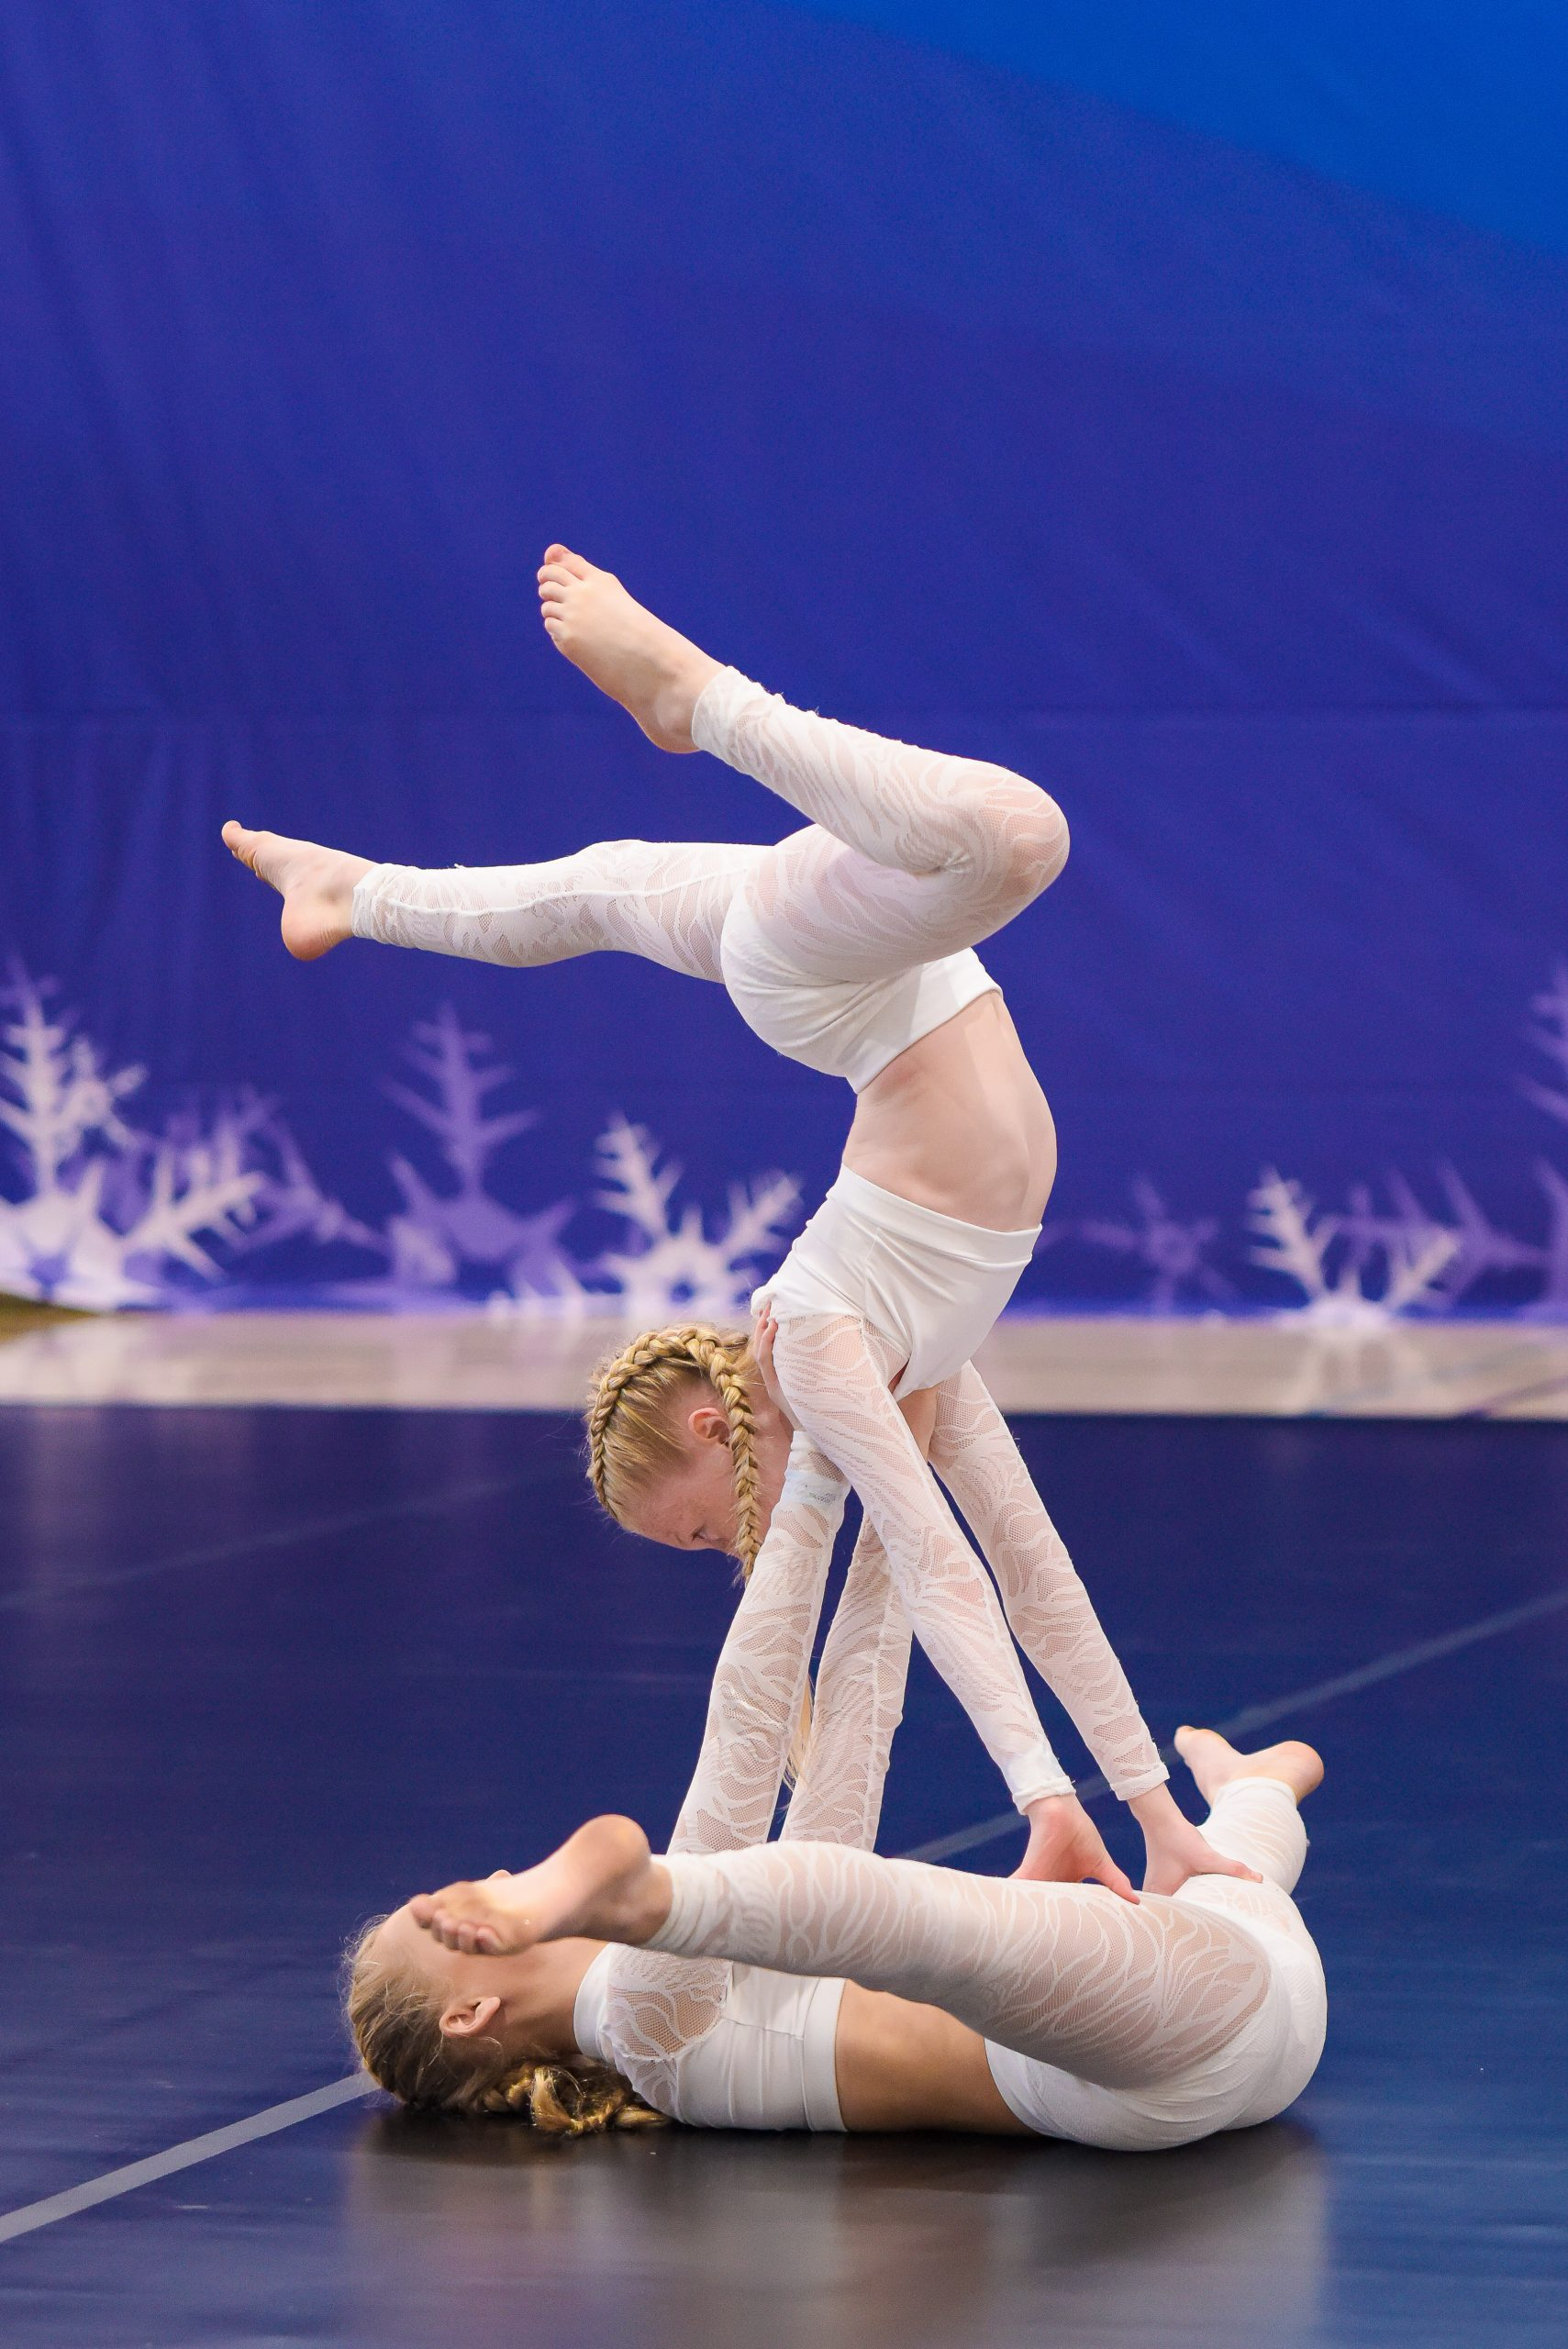 Two dancers dressed in white perform in an acro division at an ICE Ultimate Dance Experience event